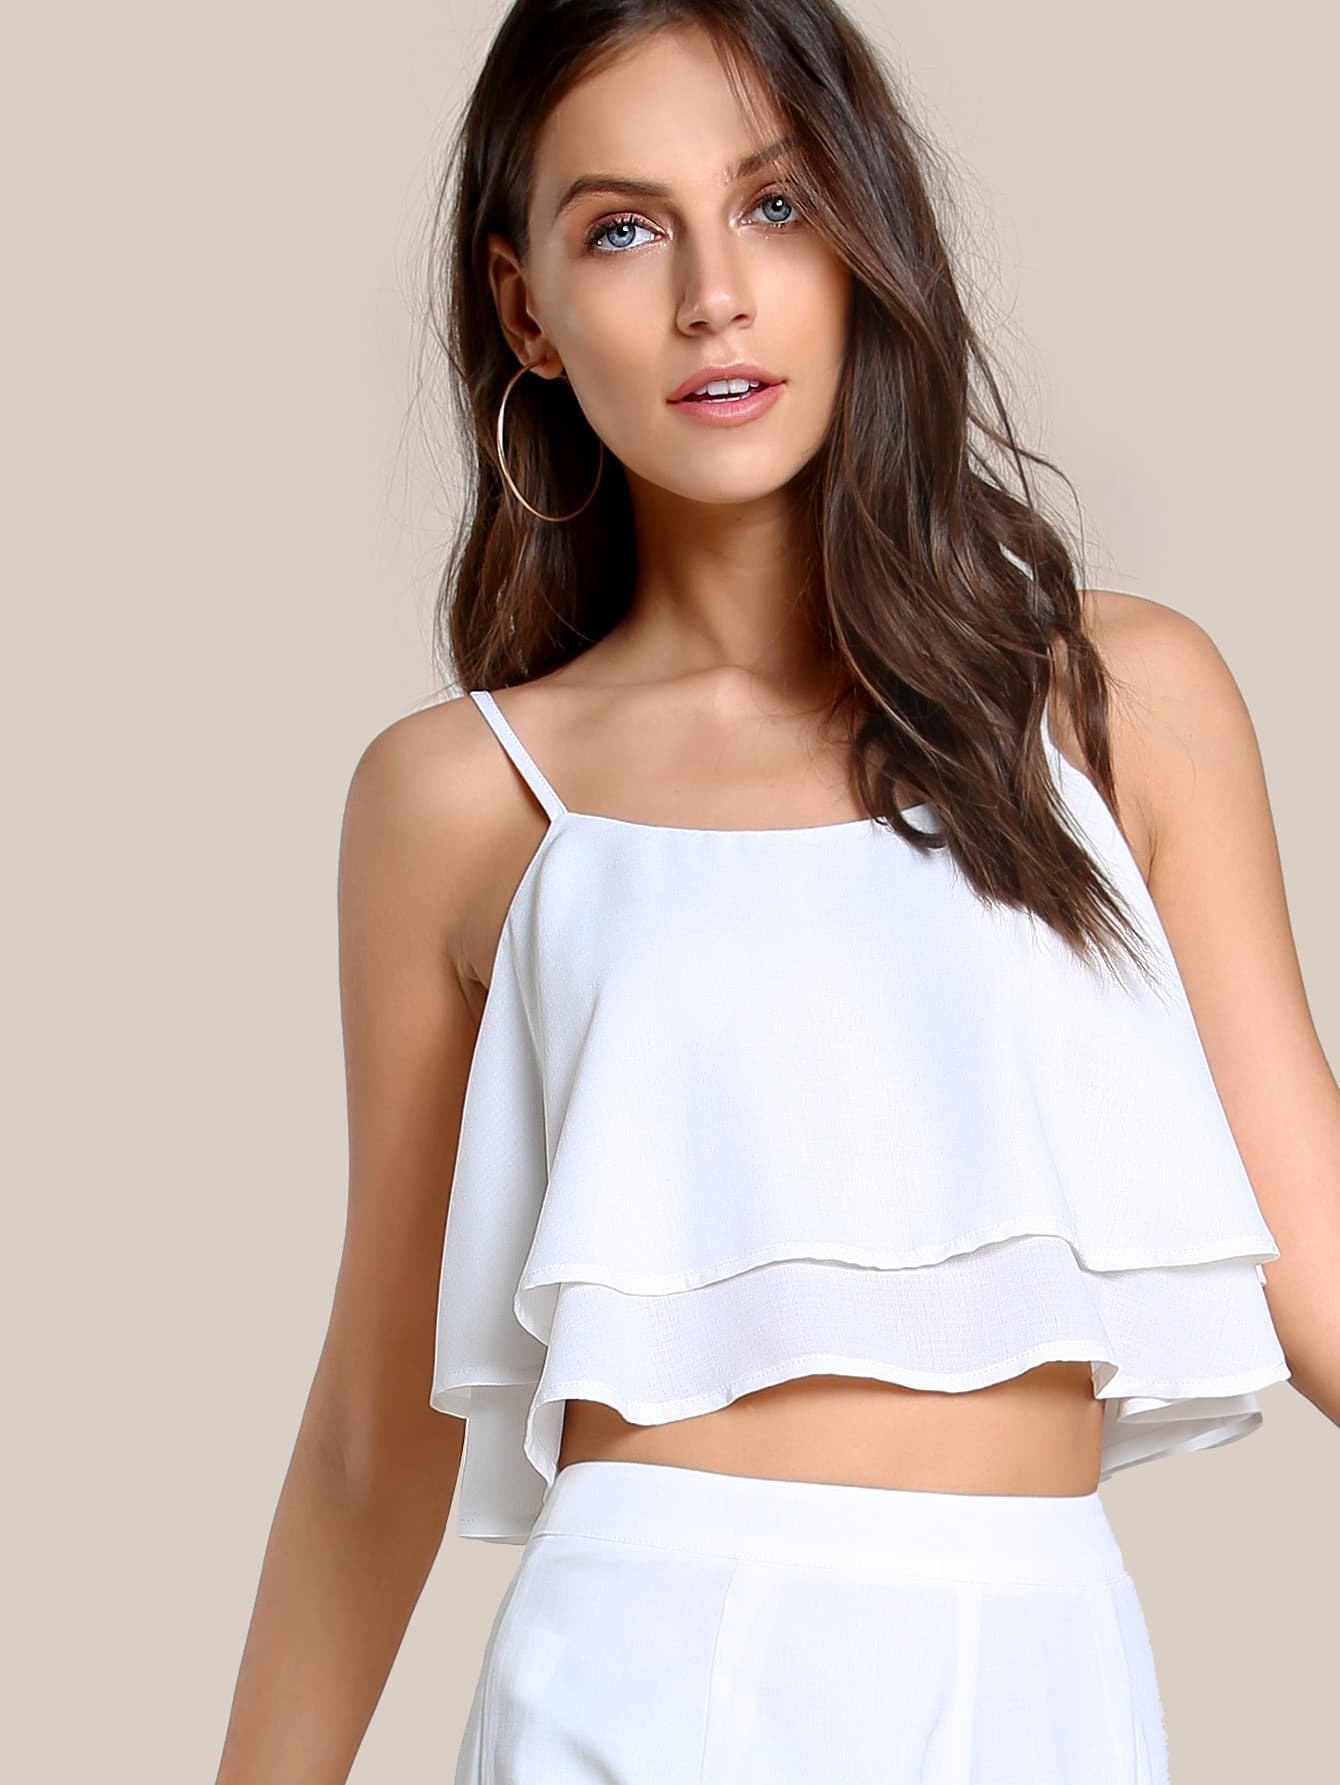 Shop online for L&L Double Layer Tie at Back Camisole. Find Camis & Tanks, Clothing and more at Additionelle.